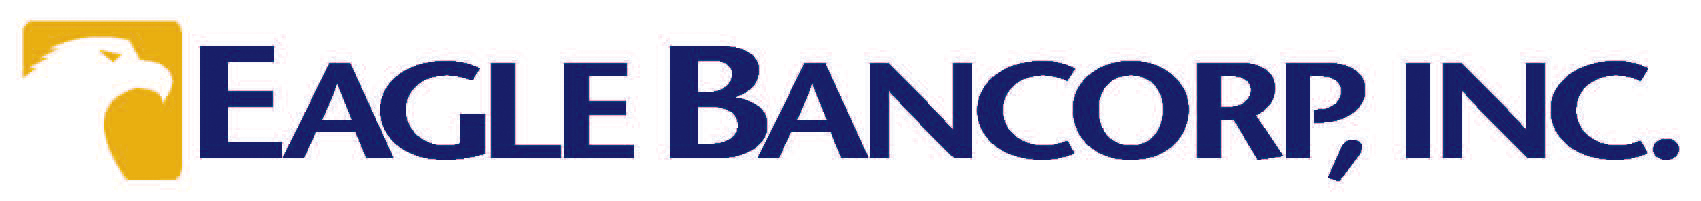 Eagle Bancorp, Inc. Logo